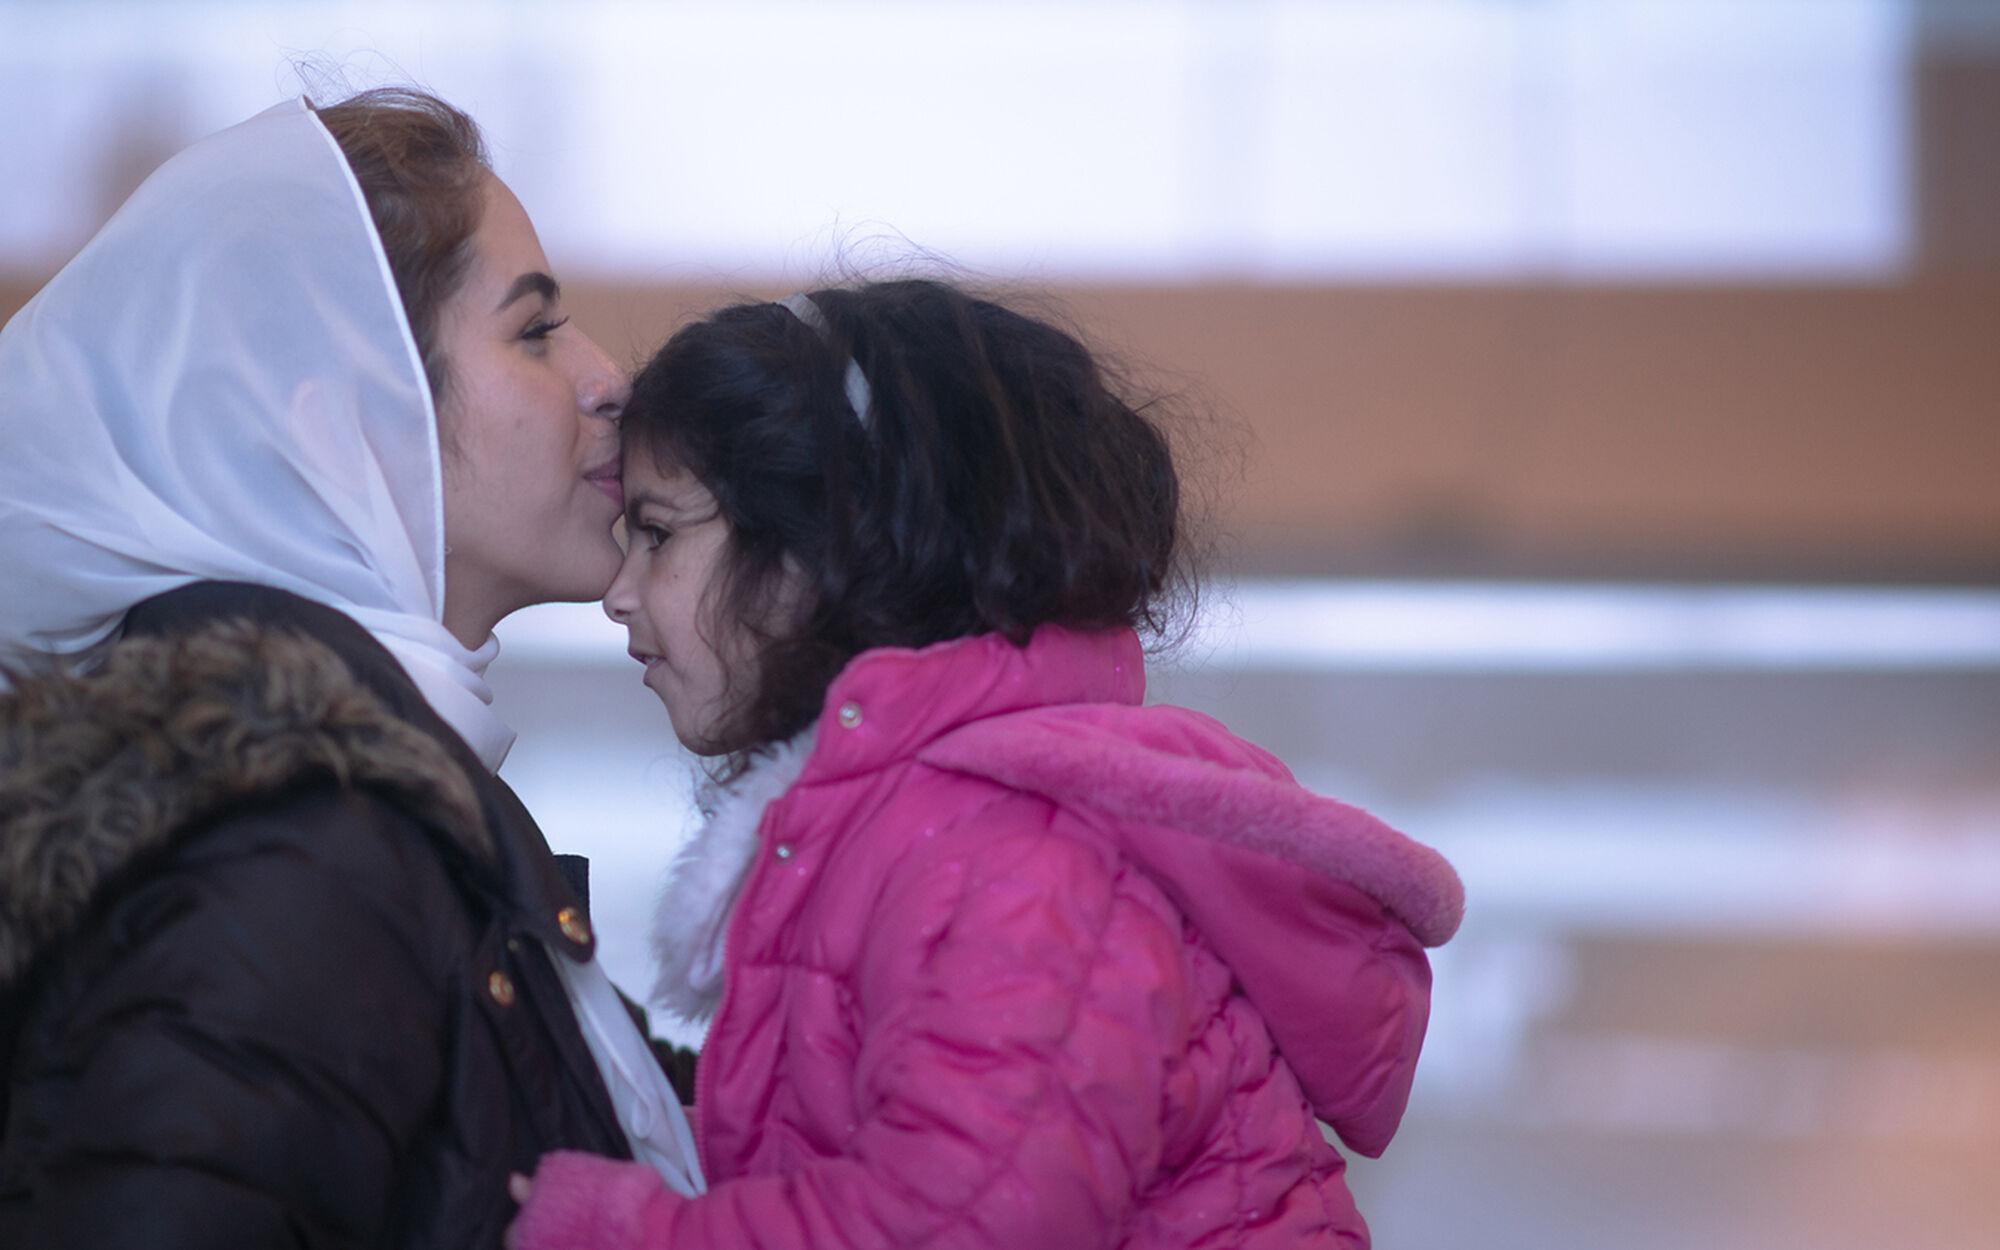 Refugee mom and daughter at airport